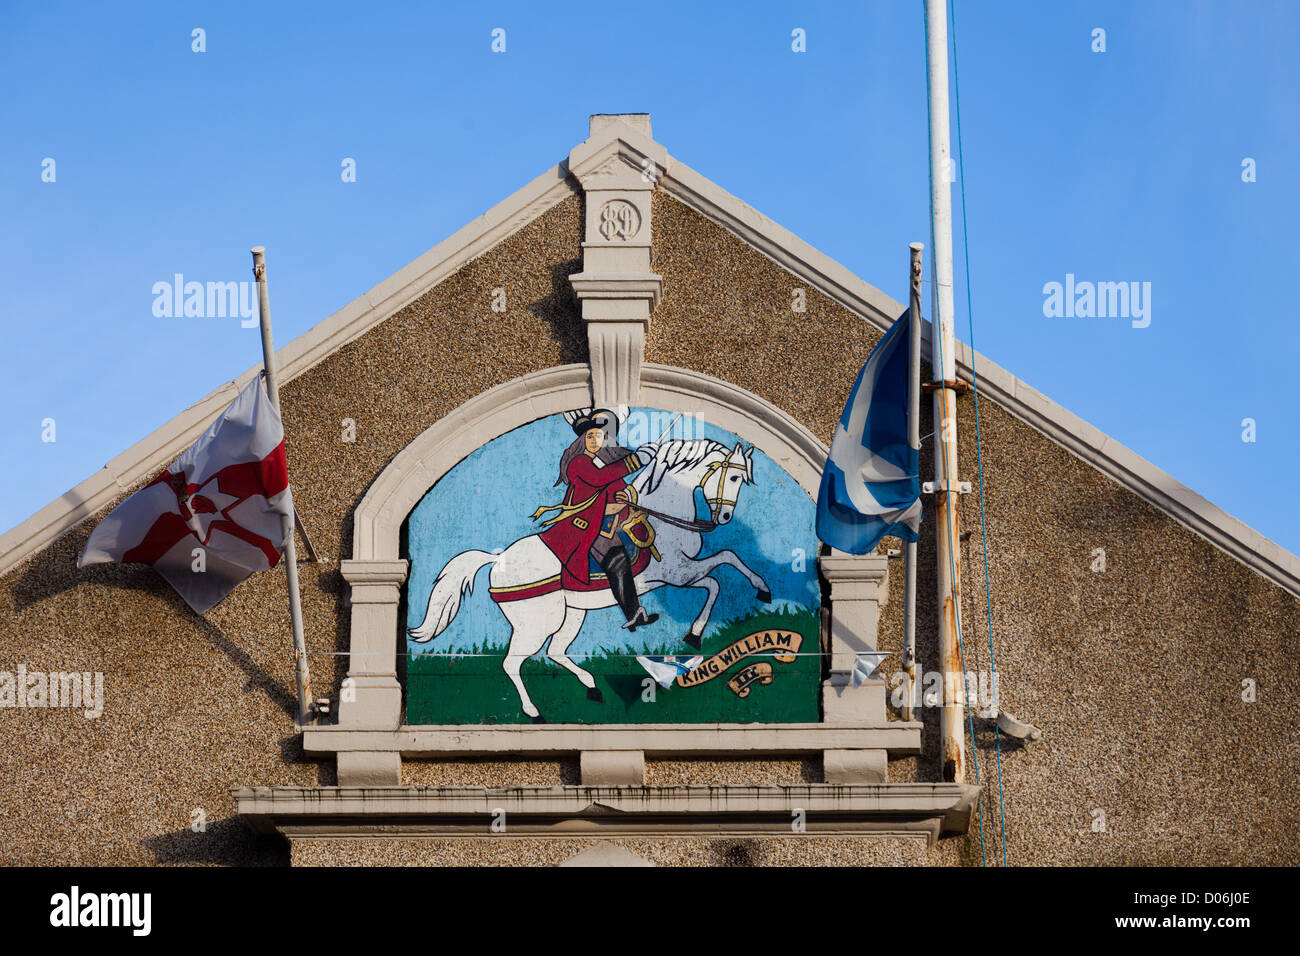 Painted Mural Of King William Of Orange On A White Horse Above The